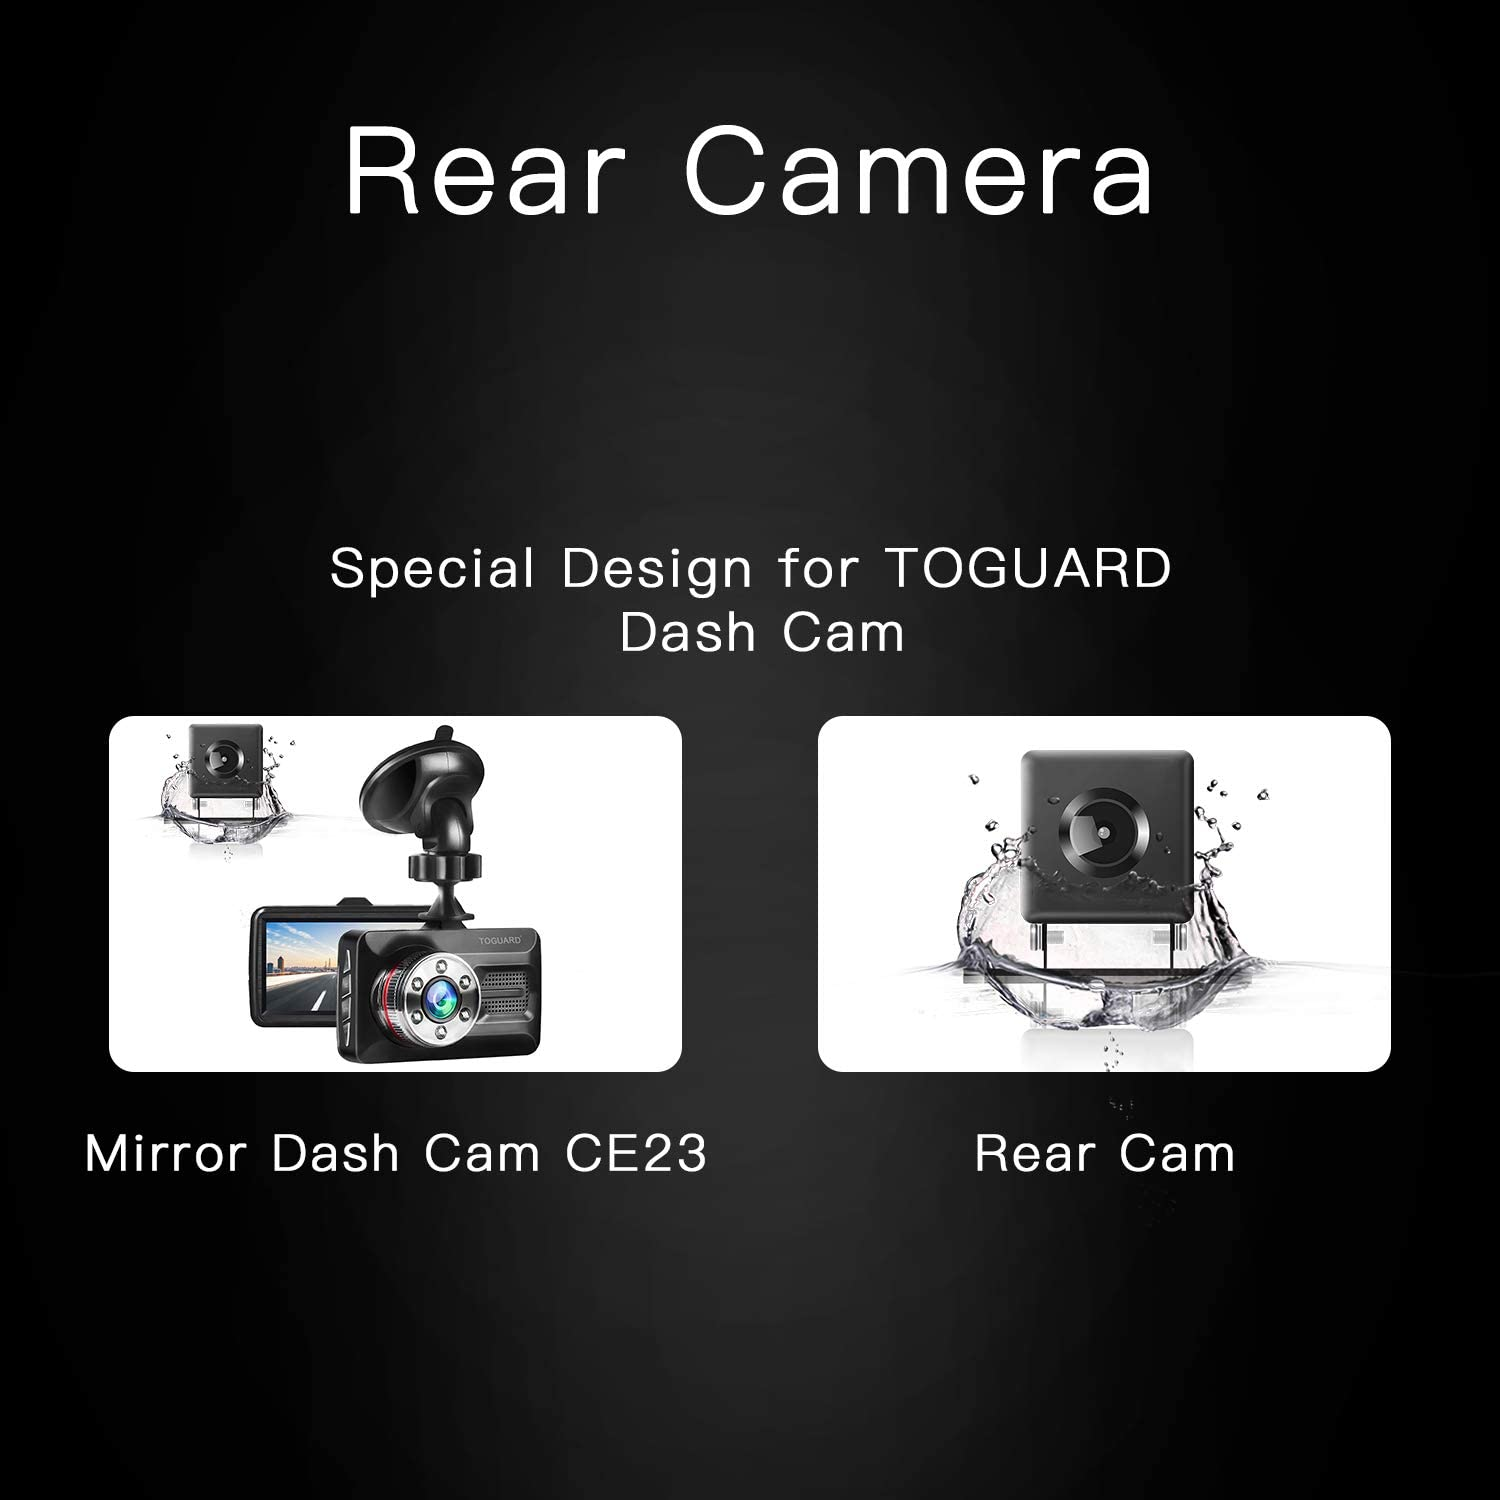 TOGUARD Dual Dash Cam Rear View Backup Camera Reversing Rear Camera CE23B